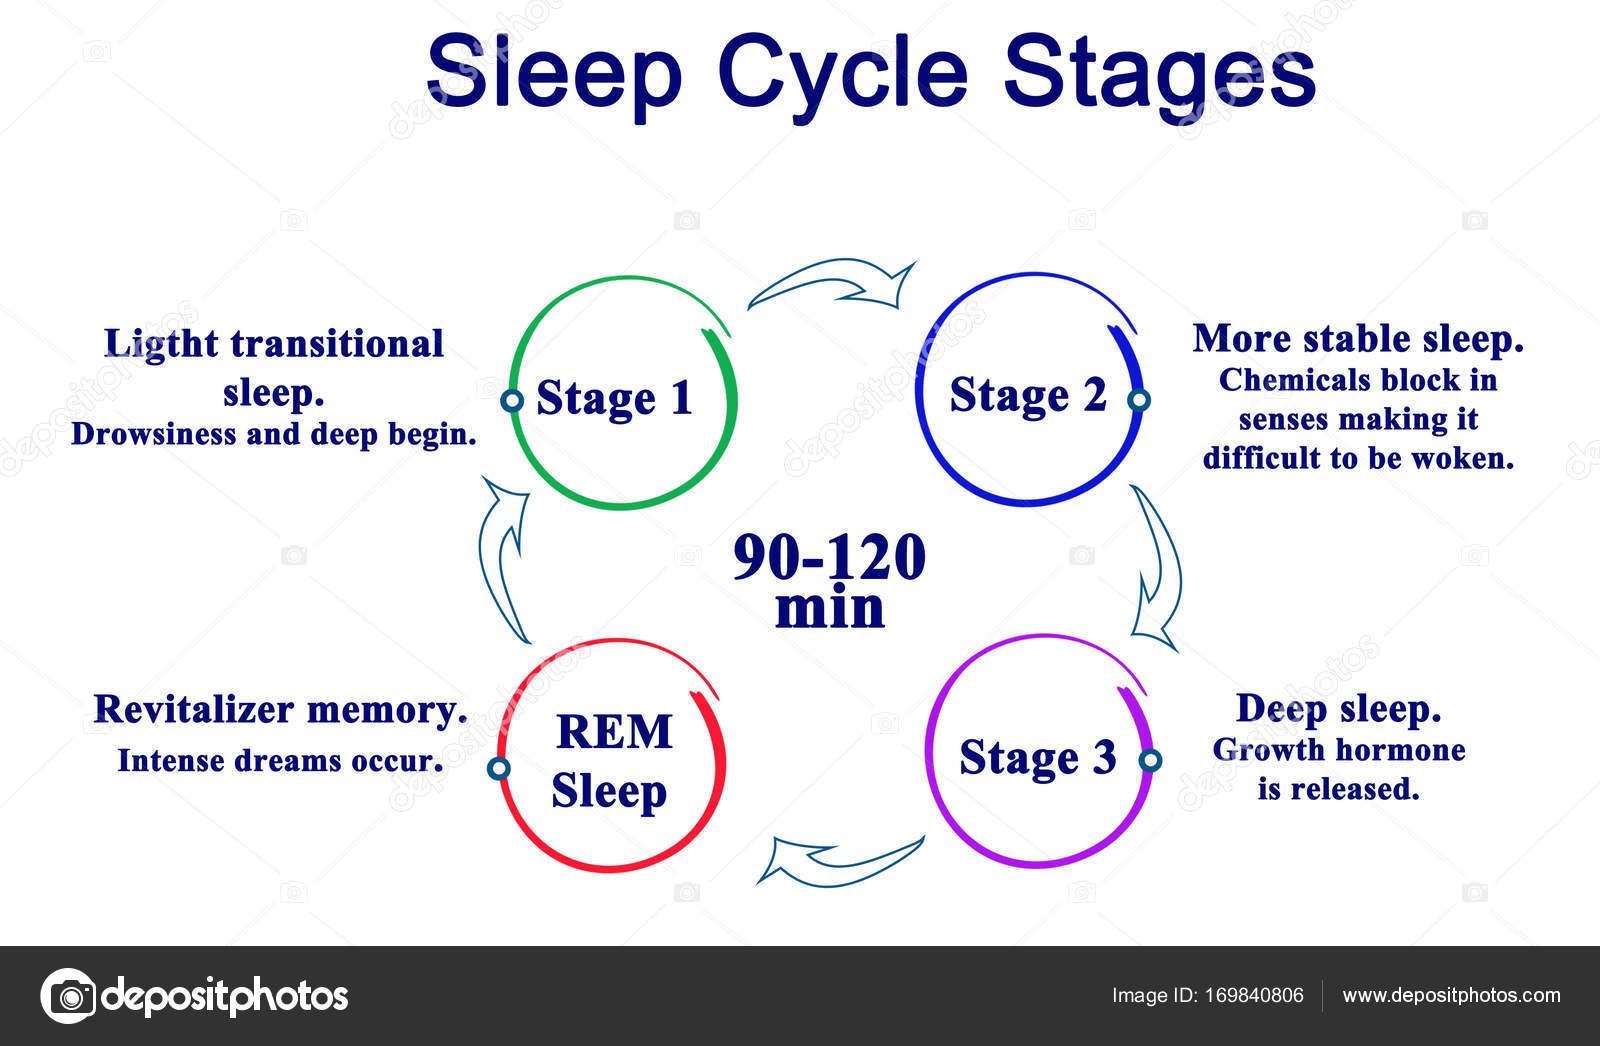 Diagram Of Sleep Cycle Stages  U2014 Stock Photo  U00a9 Vaeenma  169840806